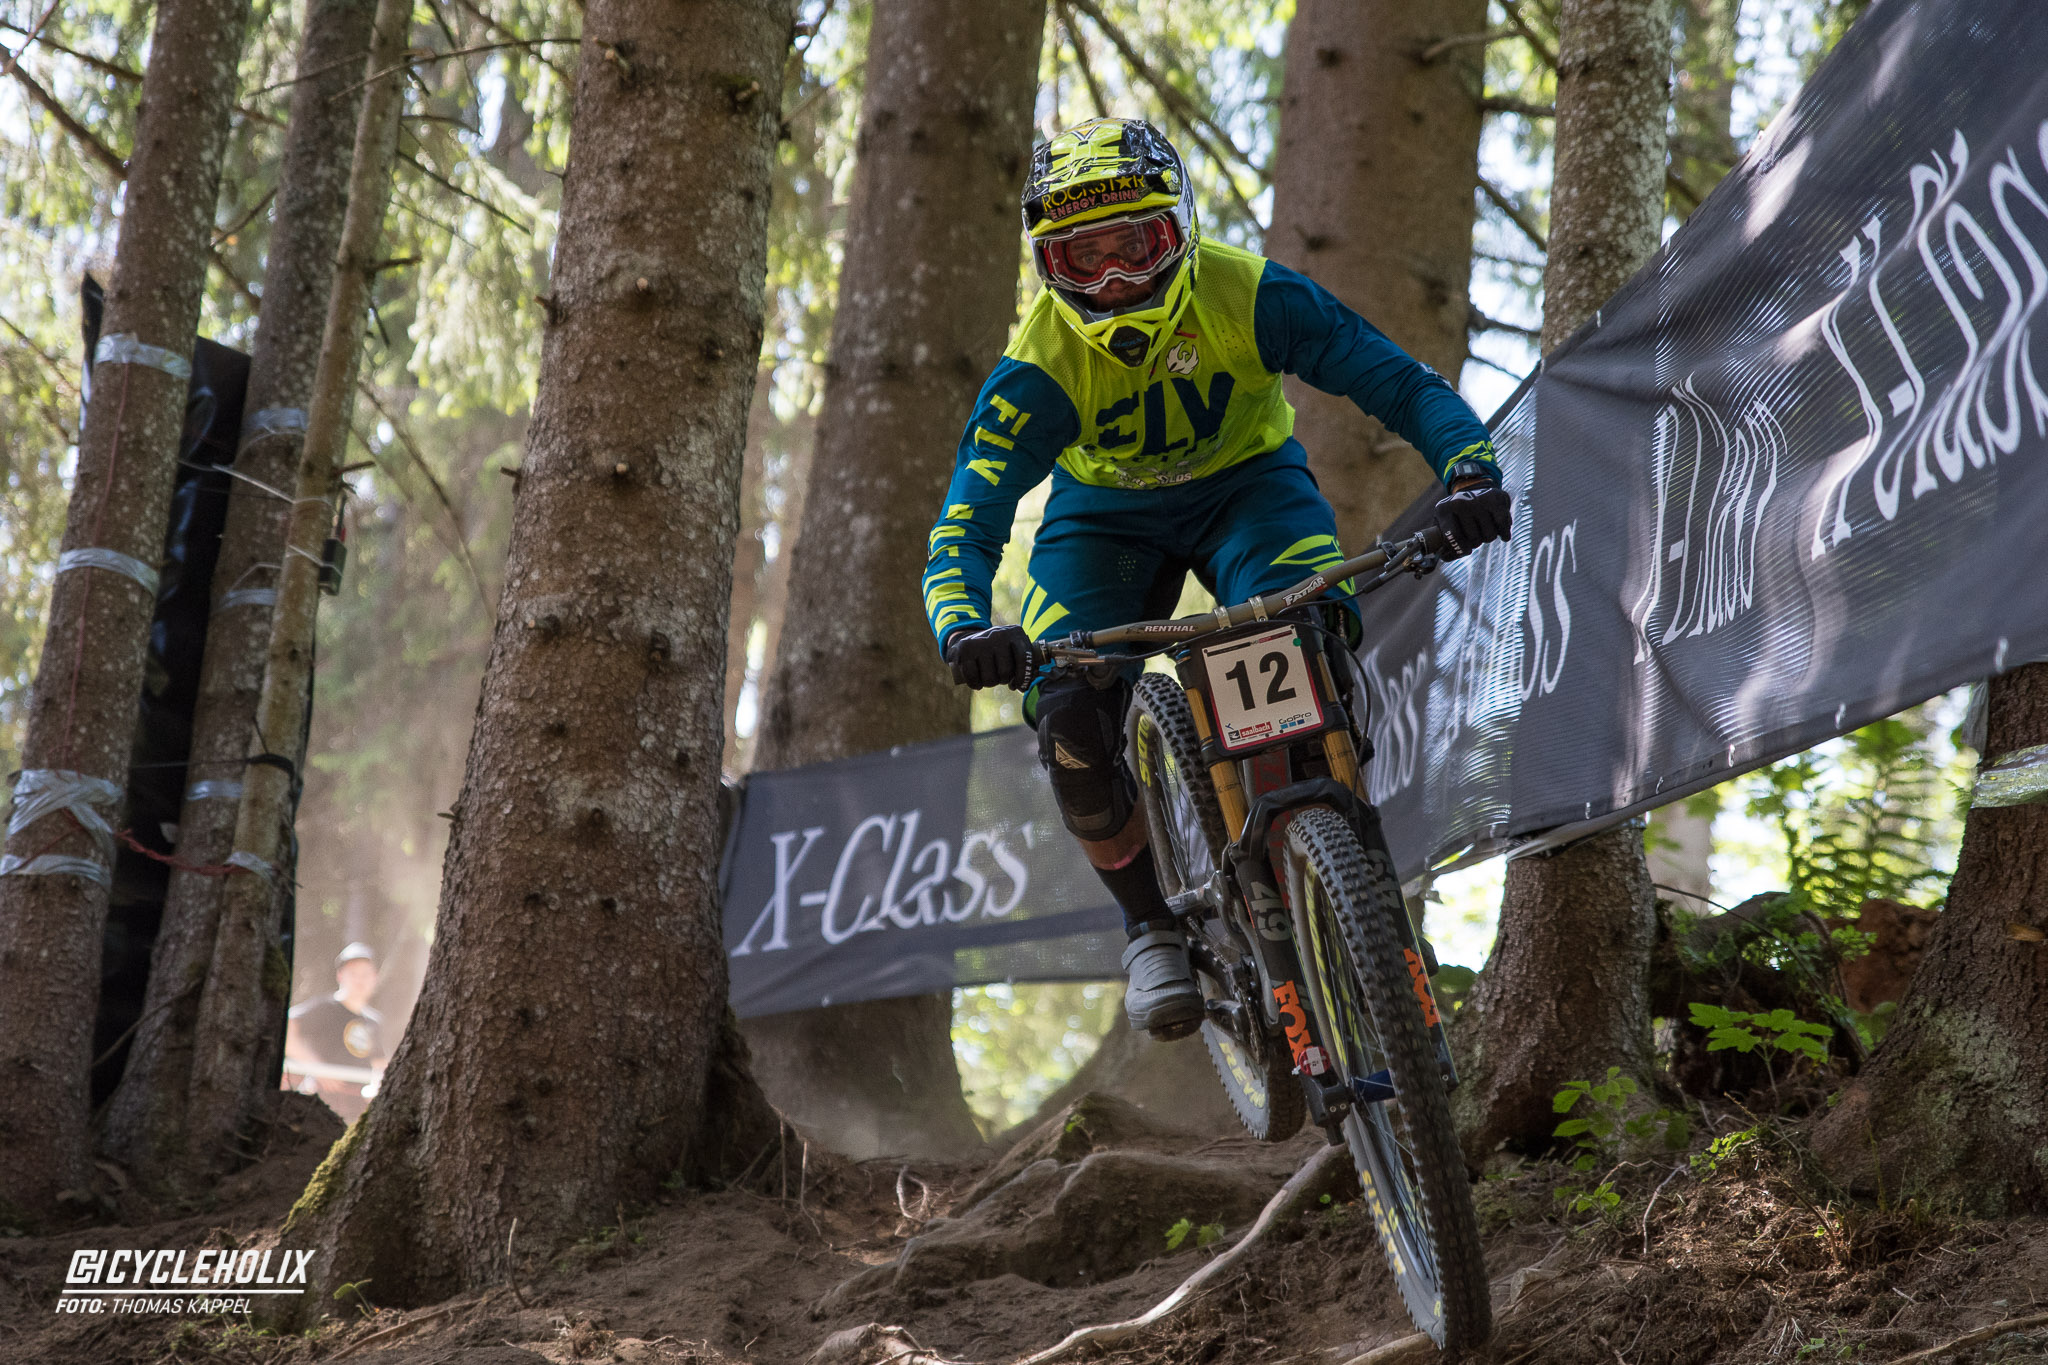 2019 Downhill Worldcup Leogang Finale Action 21 Cycleholix